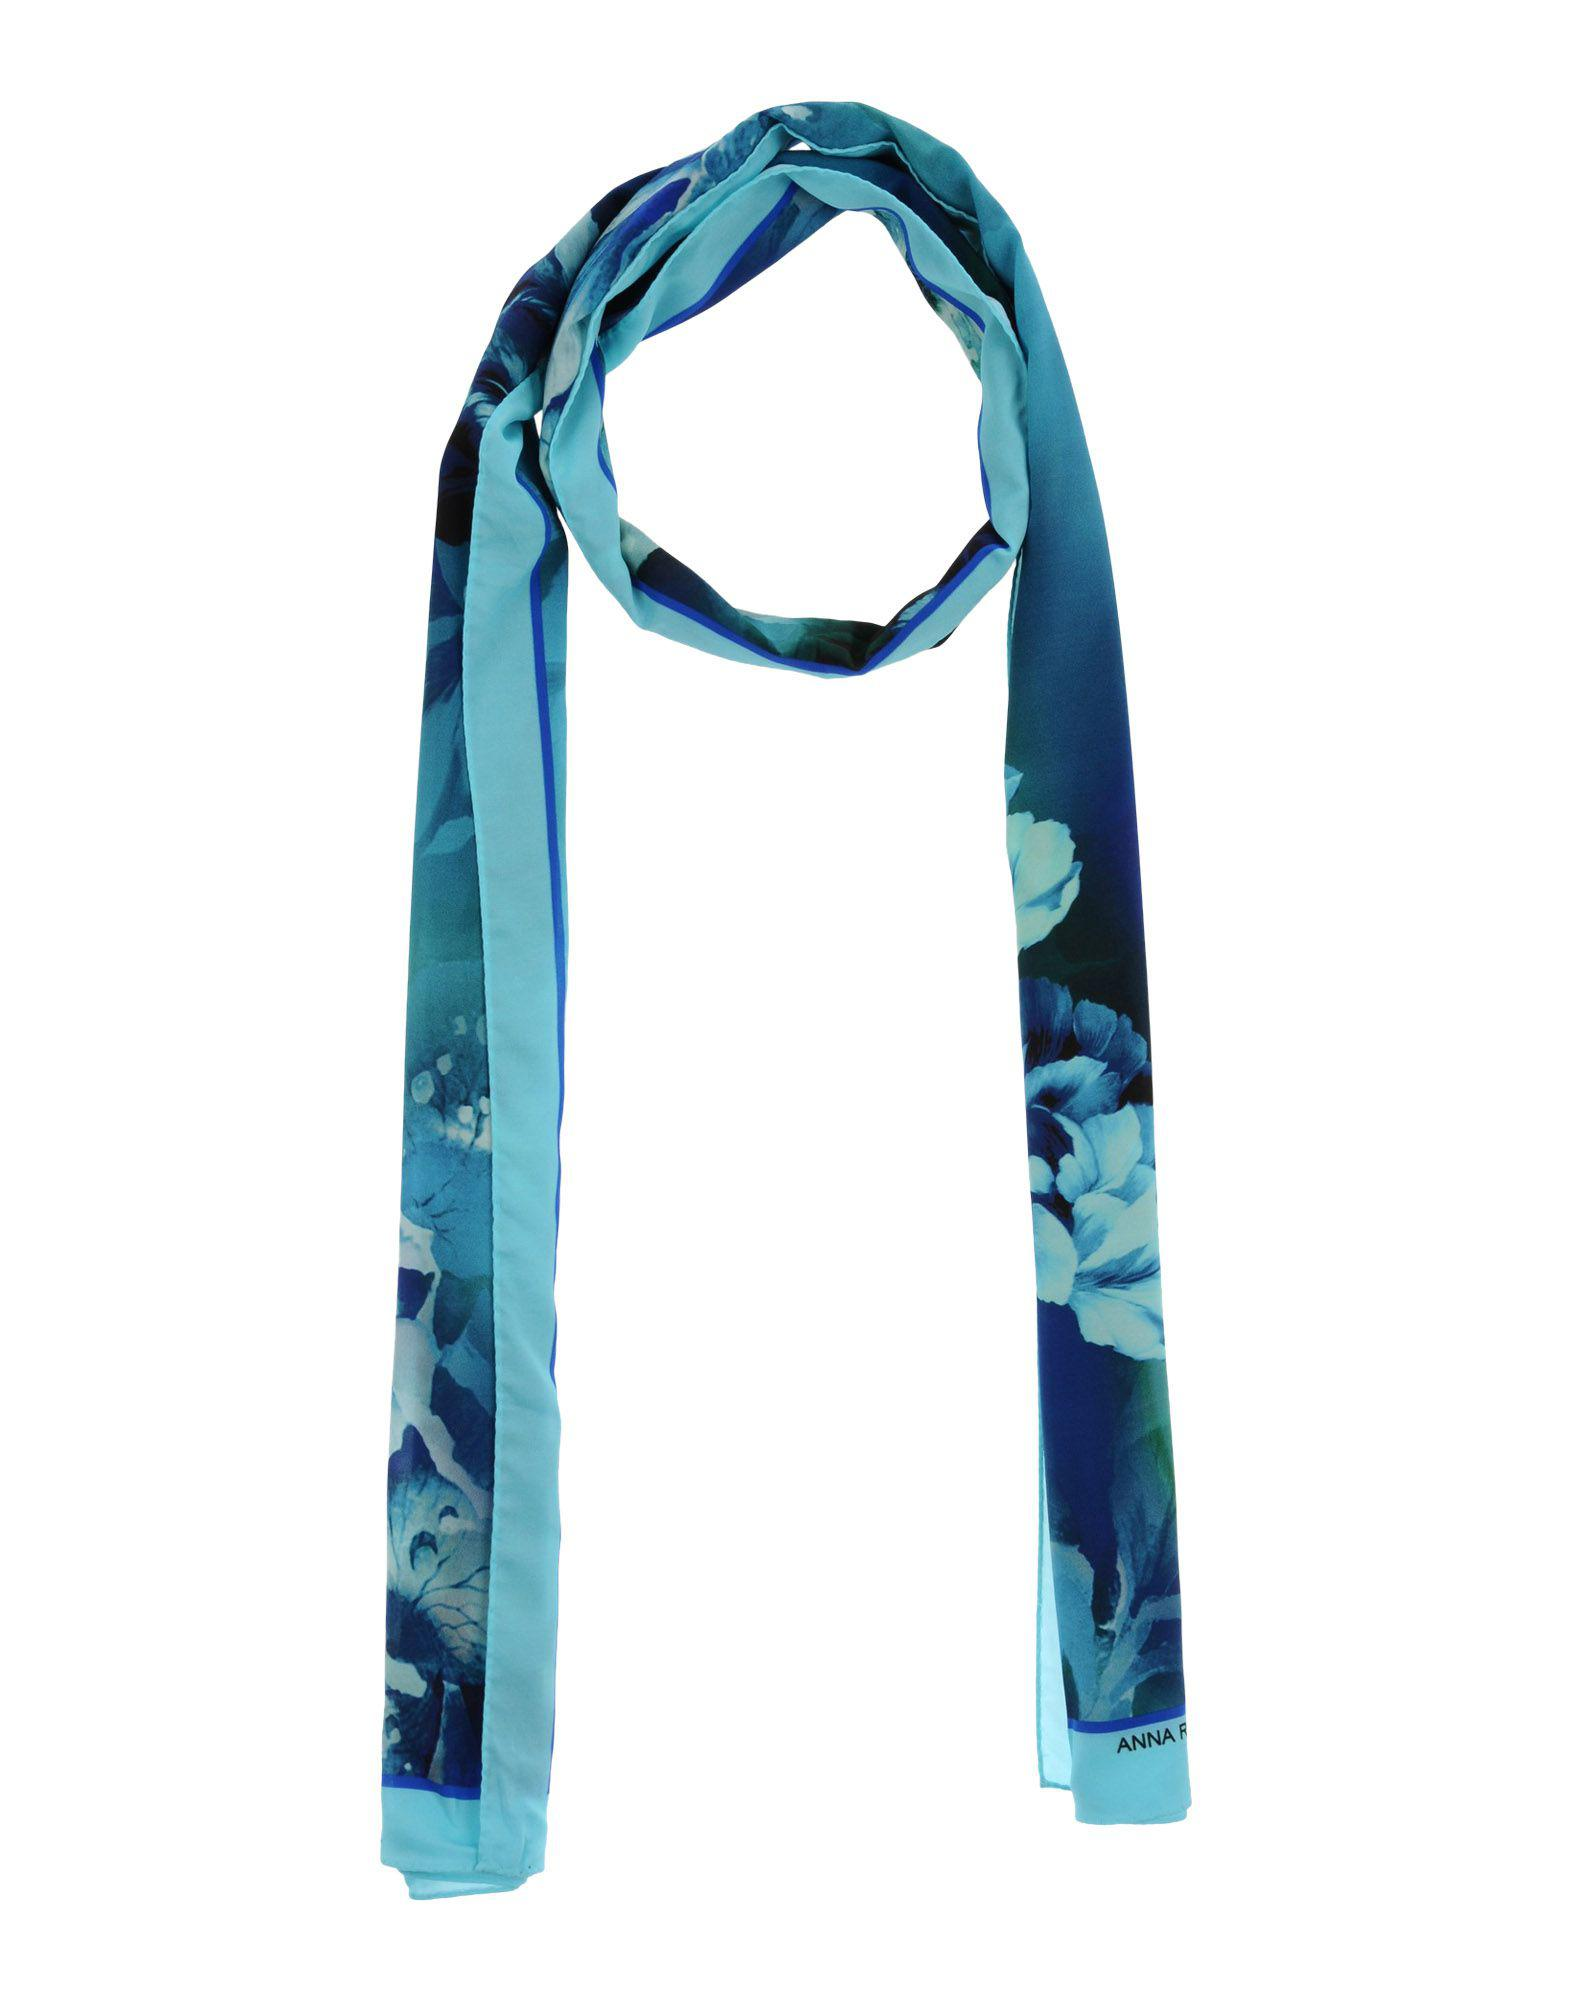 Free Shipping 100% Original ACCESSORIES - Oblong scarves Anna Rachele Cheap Sale Classic CpWNidAm7